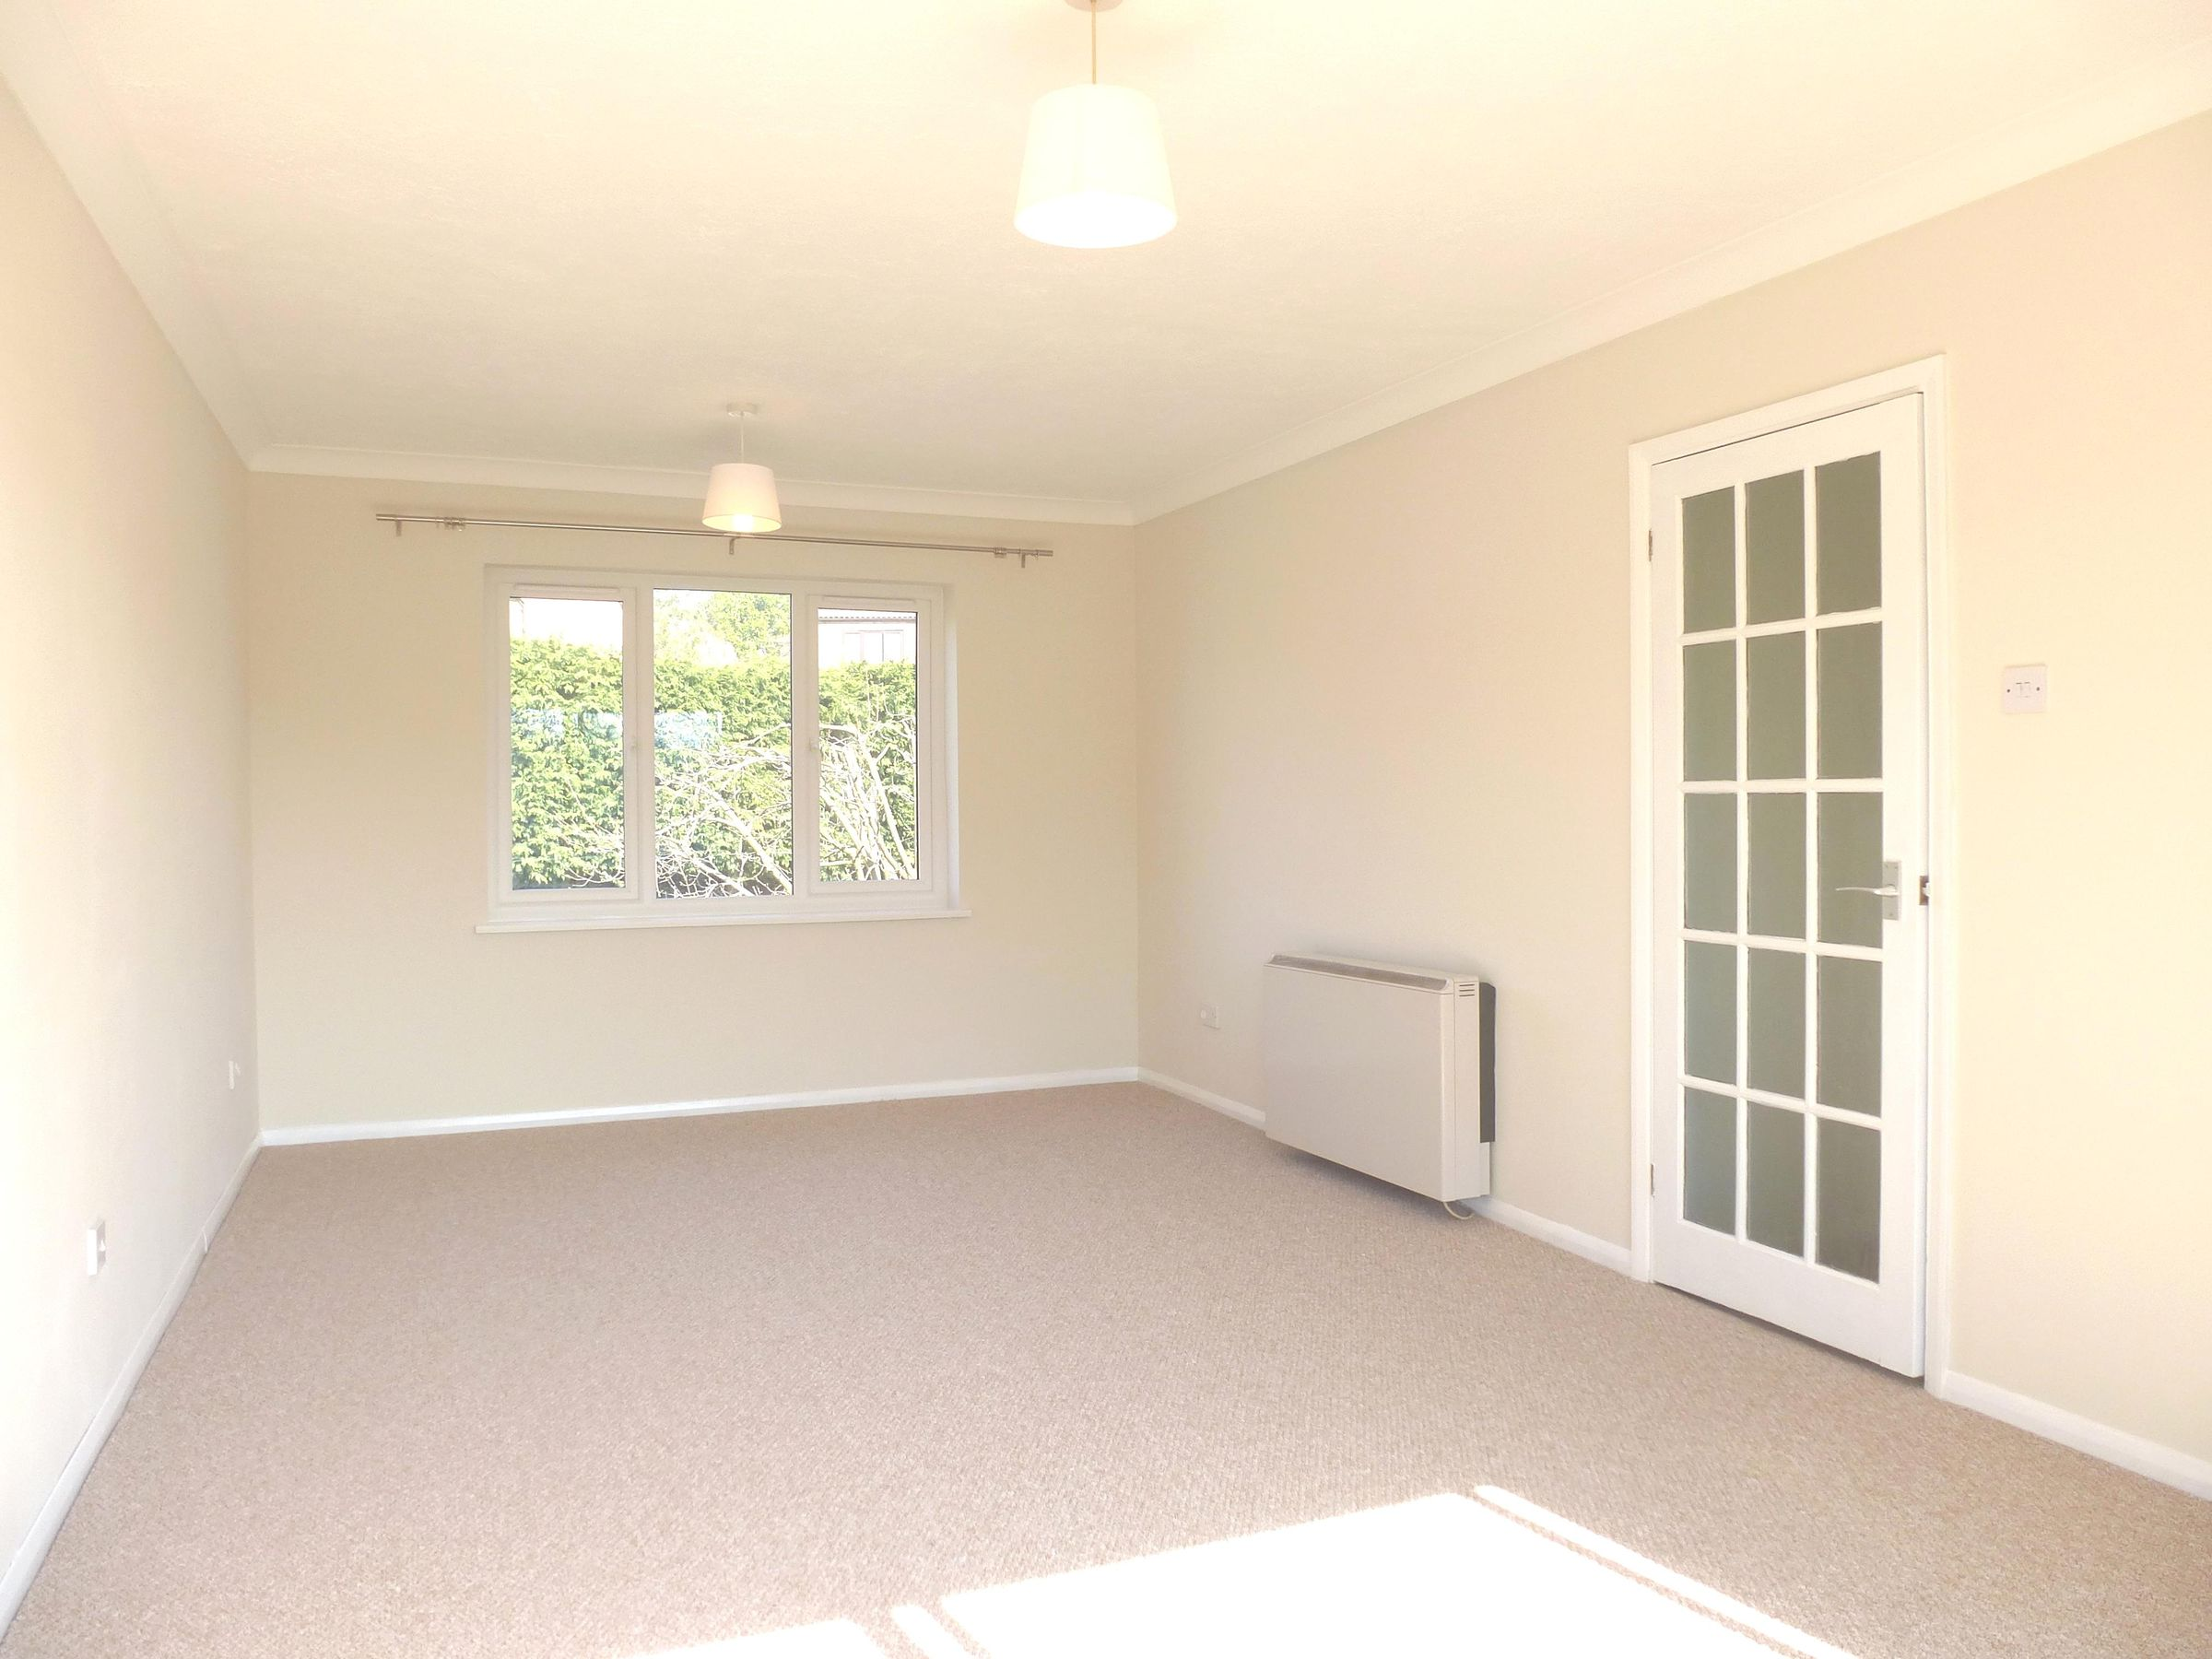 Property photo 1 of 7. Living Room